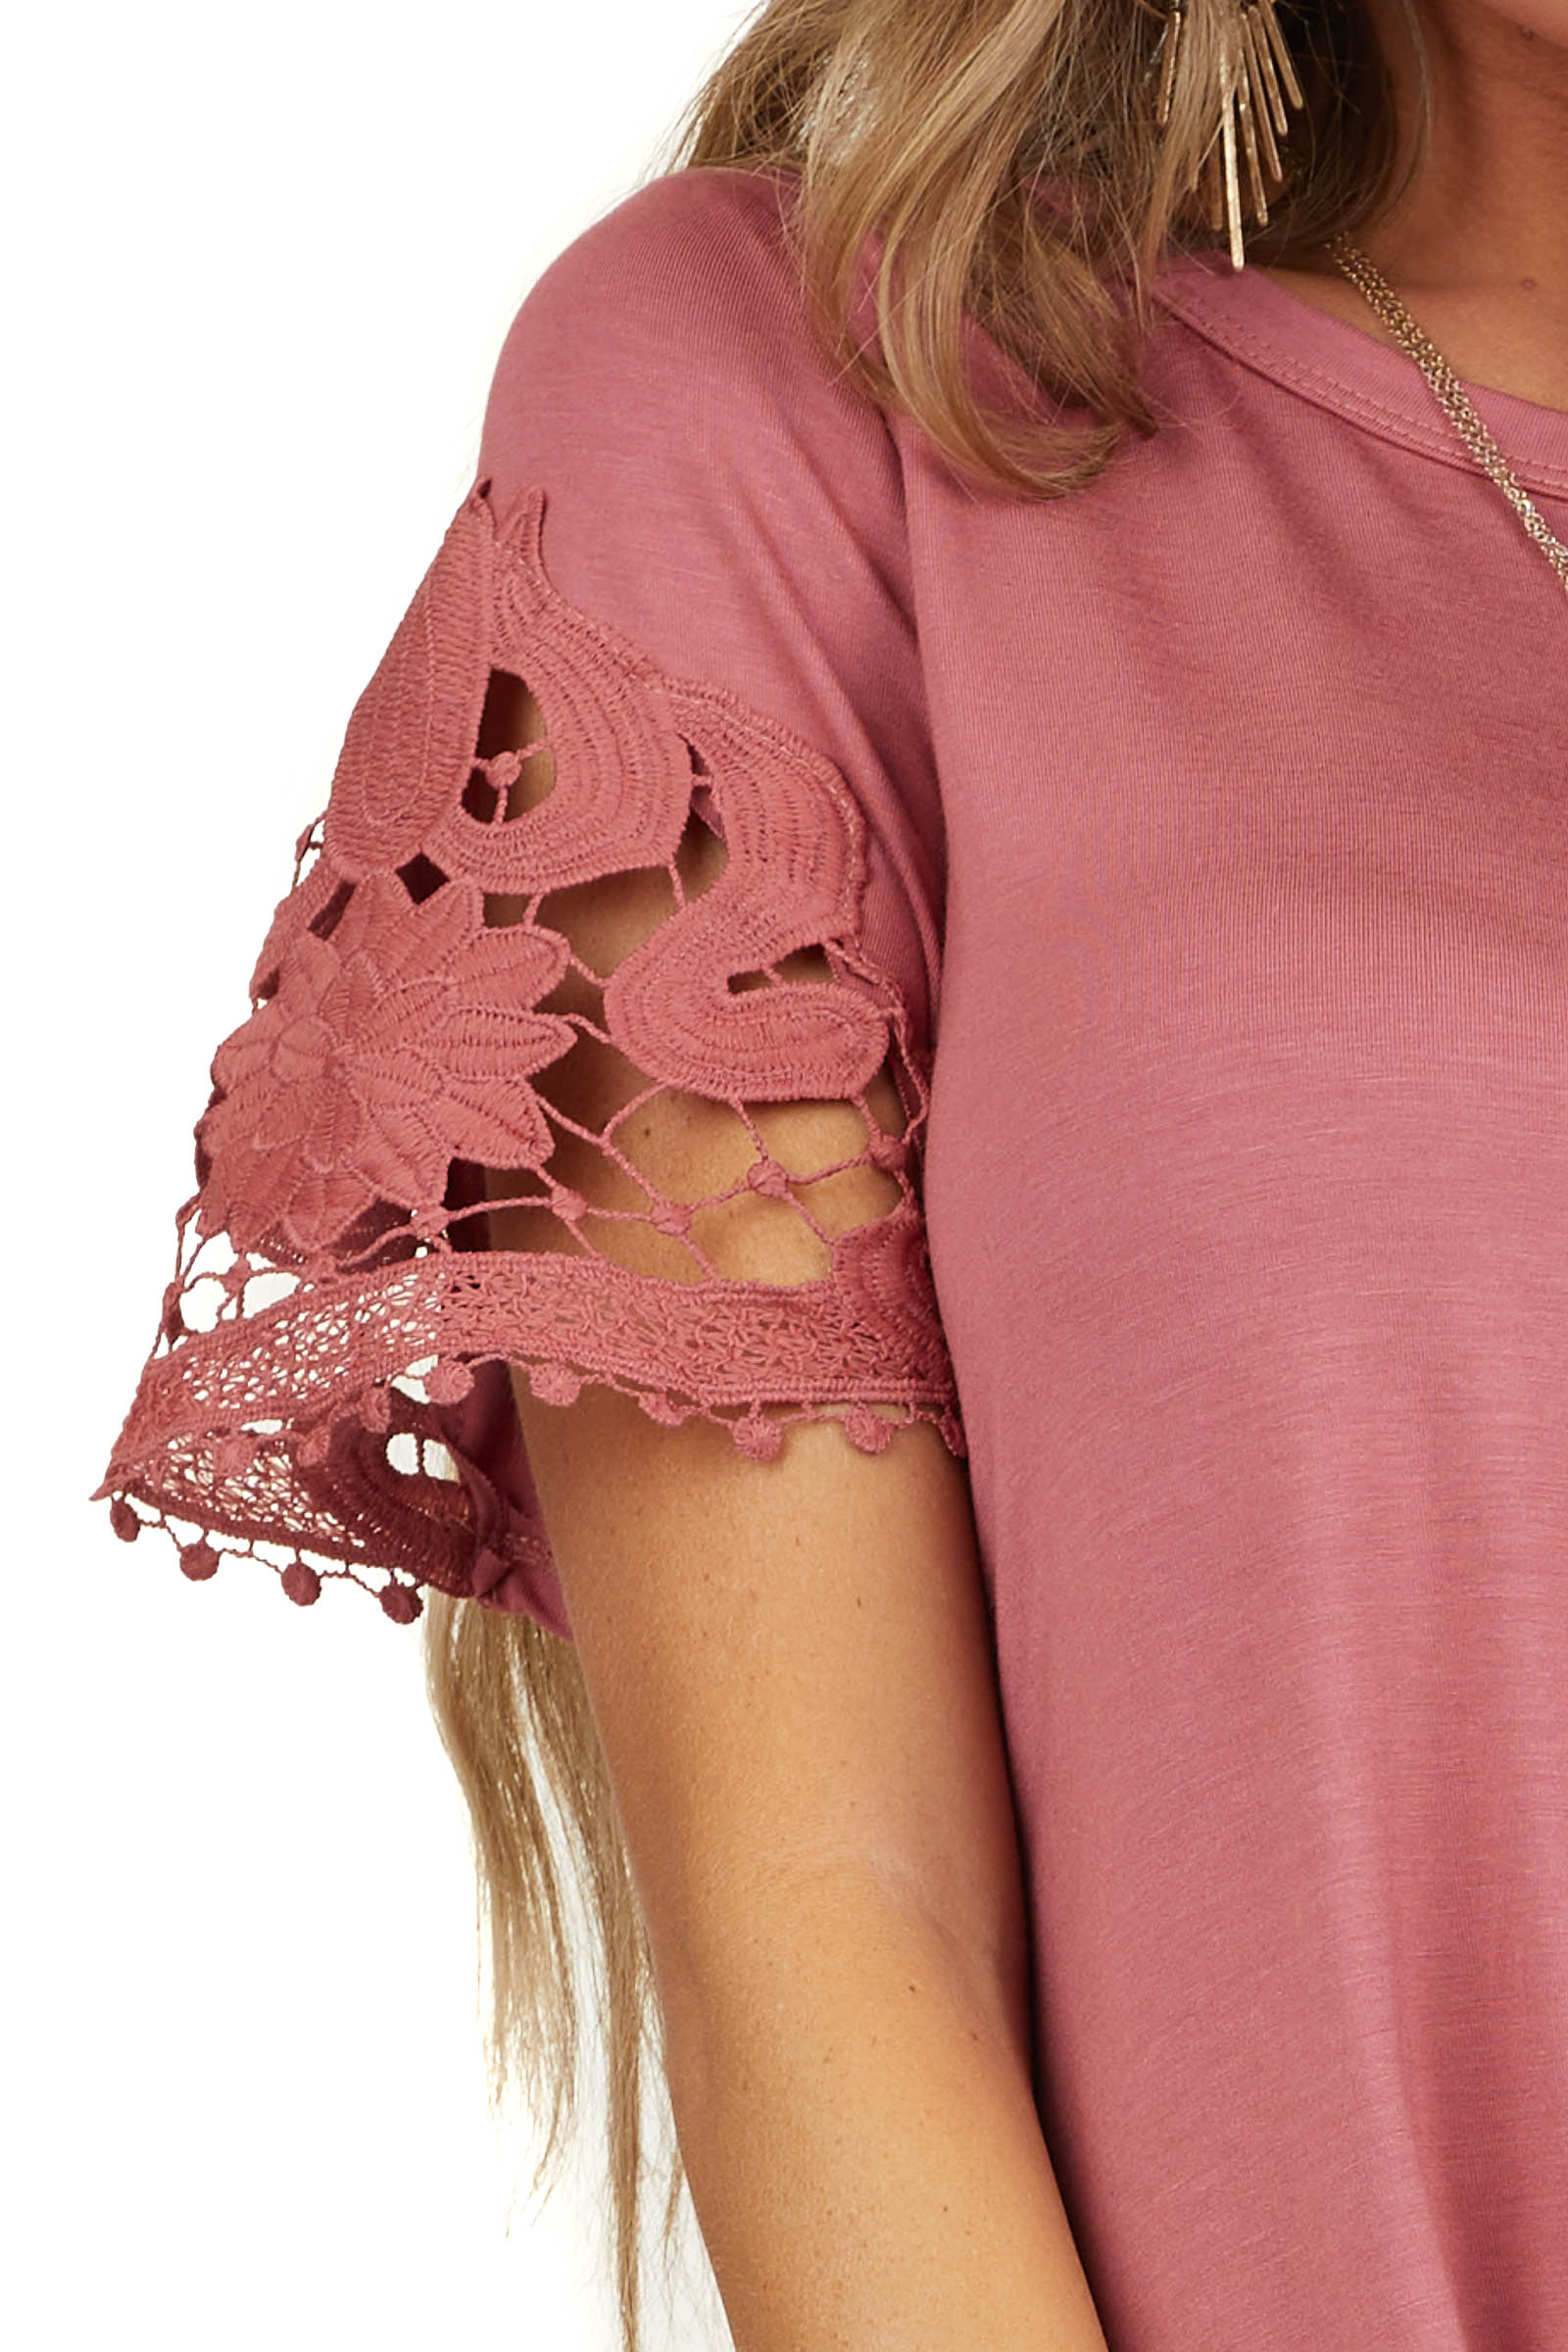 Marsala Front Twist Knit Top with Short Crochet Lace Sleeves